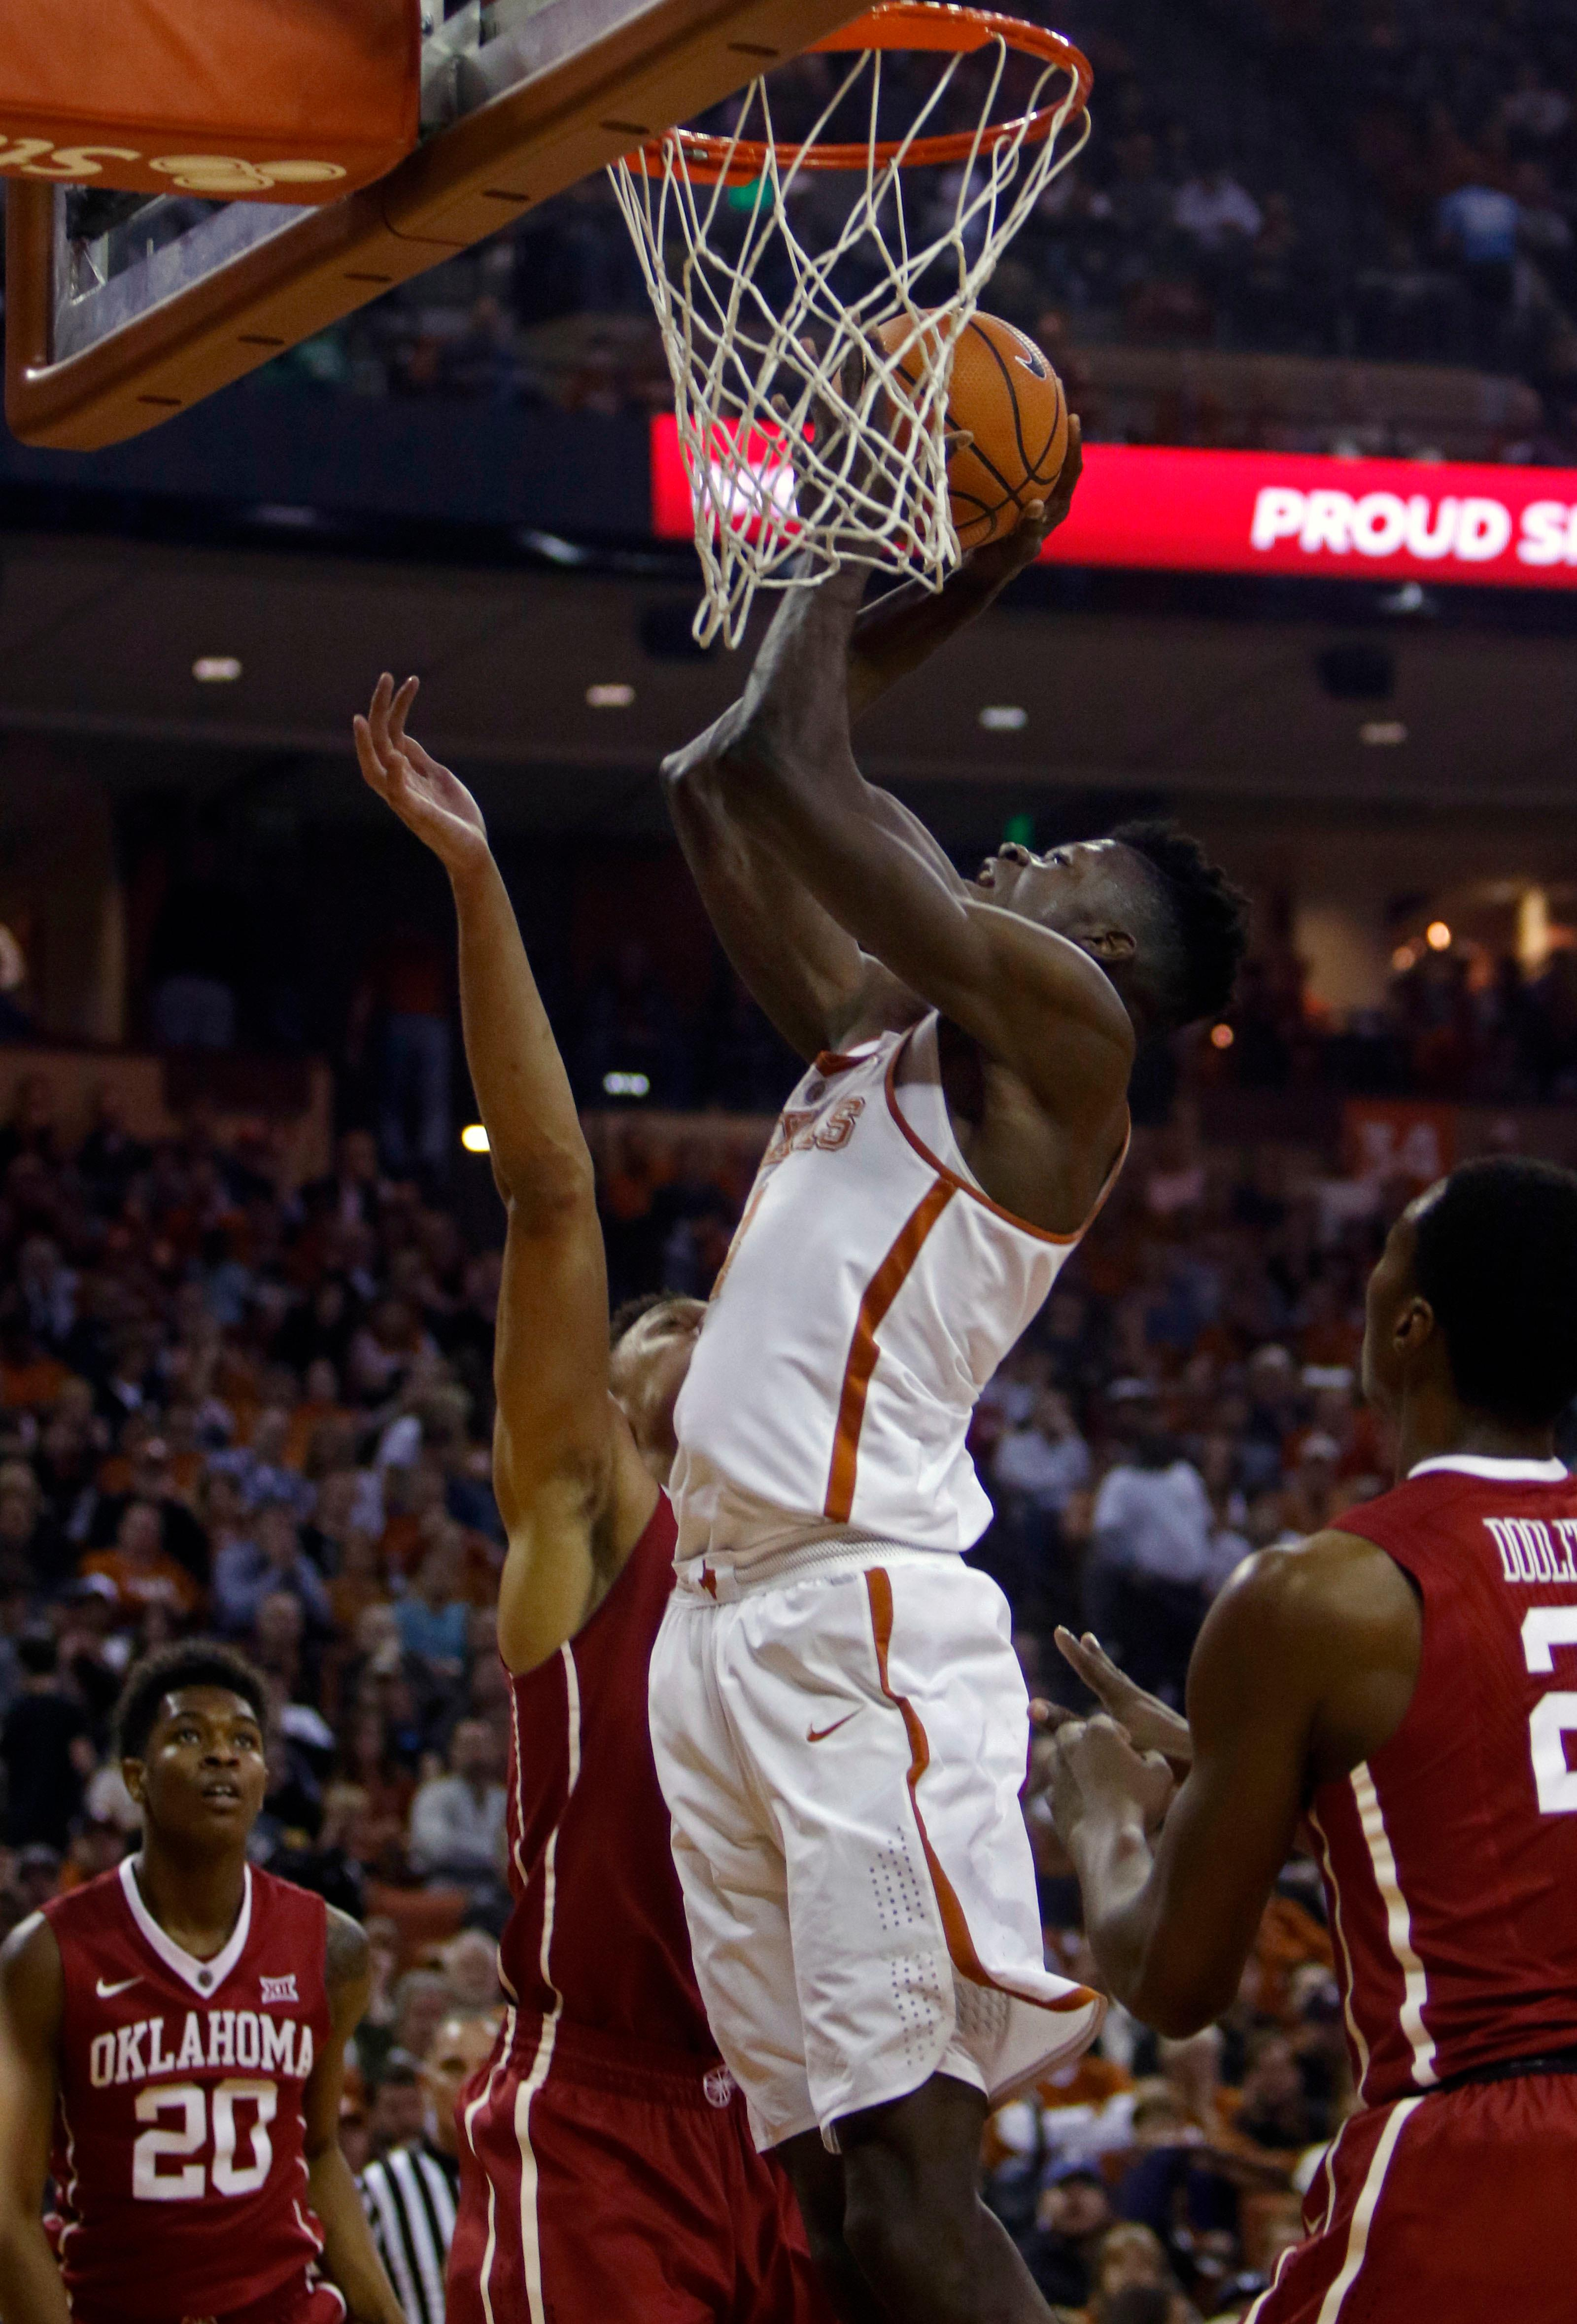 Texas center Mohamed Bamba, right, shoots against Oklahoma center Jamuni McNeace, left, during the first half of an NCAA college basketball game, Saturday, Feb. 3, 2018, in Austin, Texas. (AP Photo/Michael Thomas)